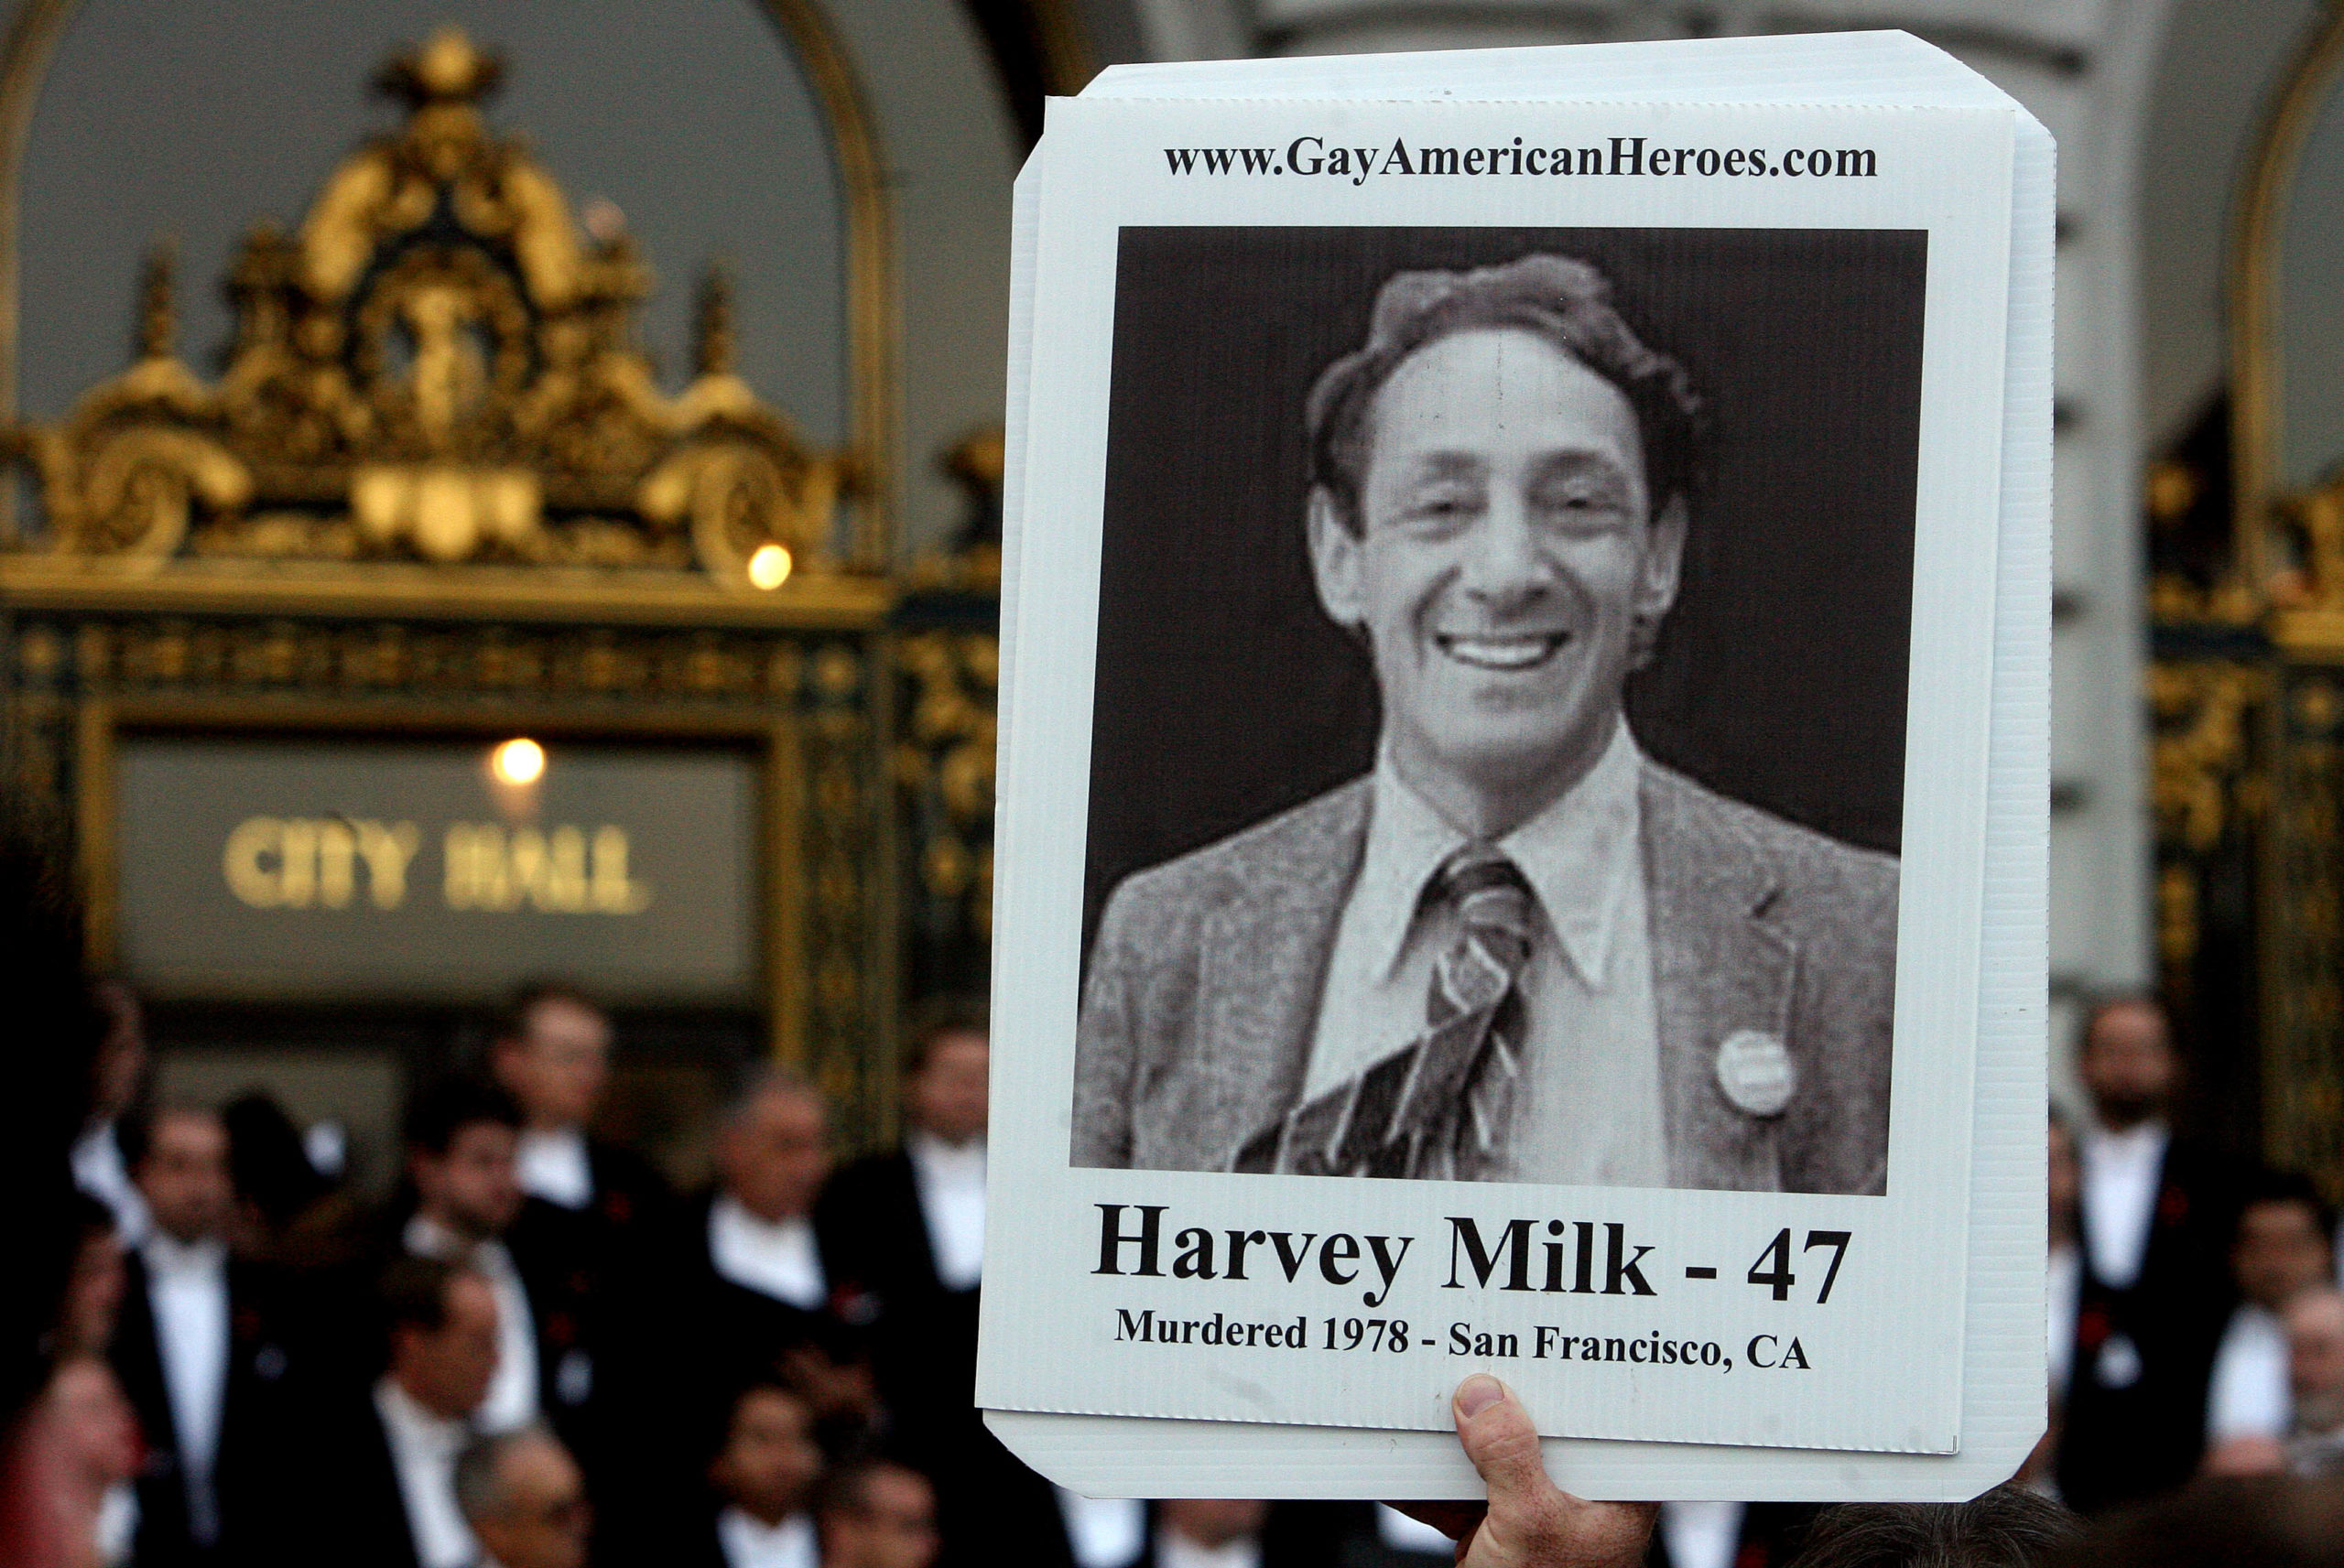 Remembering the great Harvey Milk 42 years since his death, the gay pioneer who tragically became a martyr